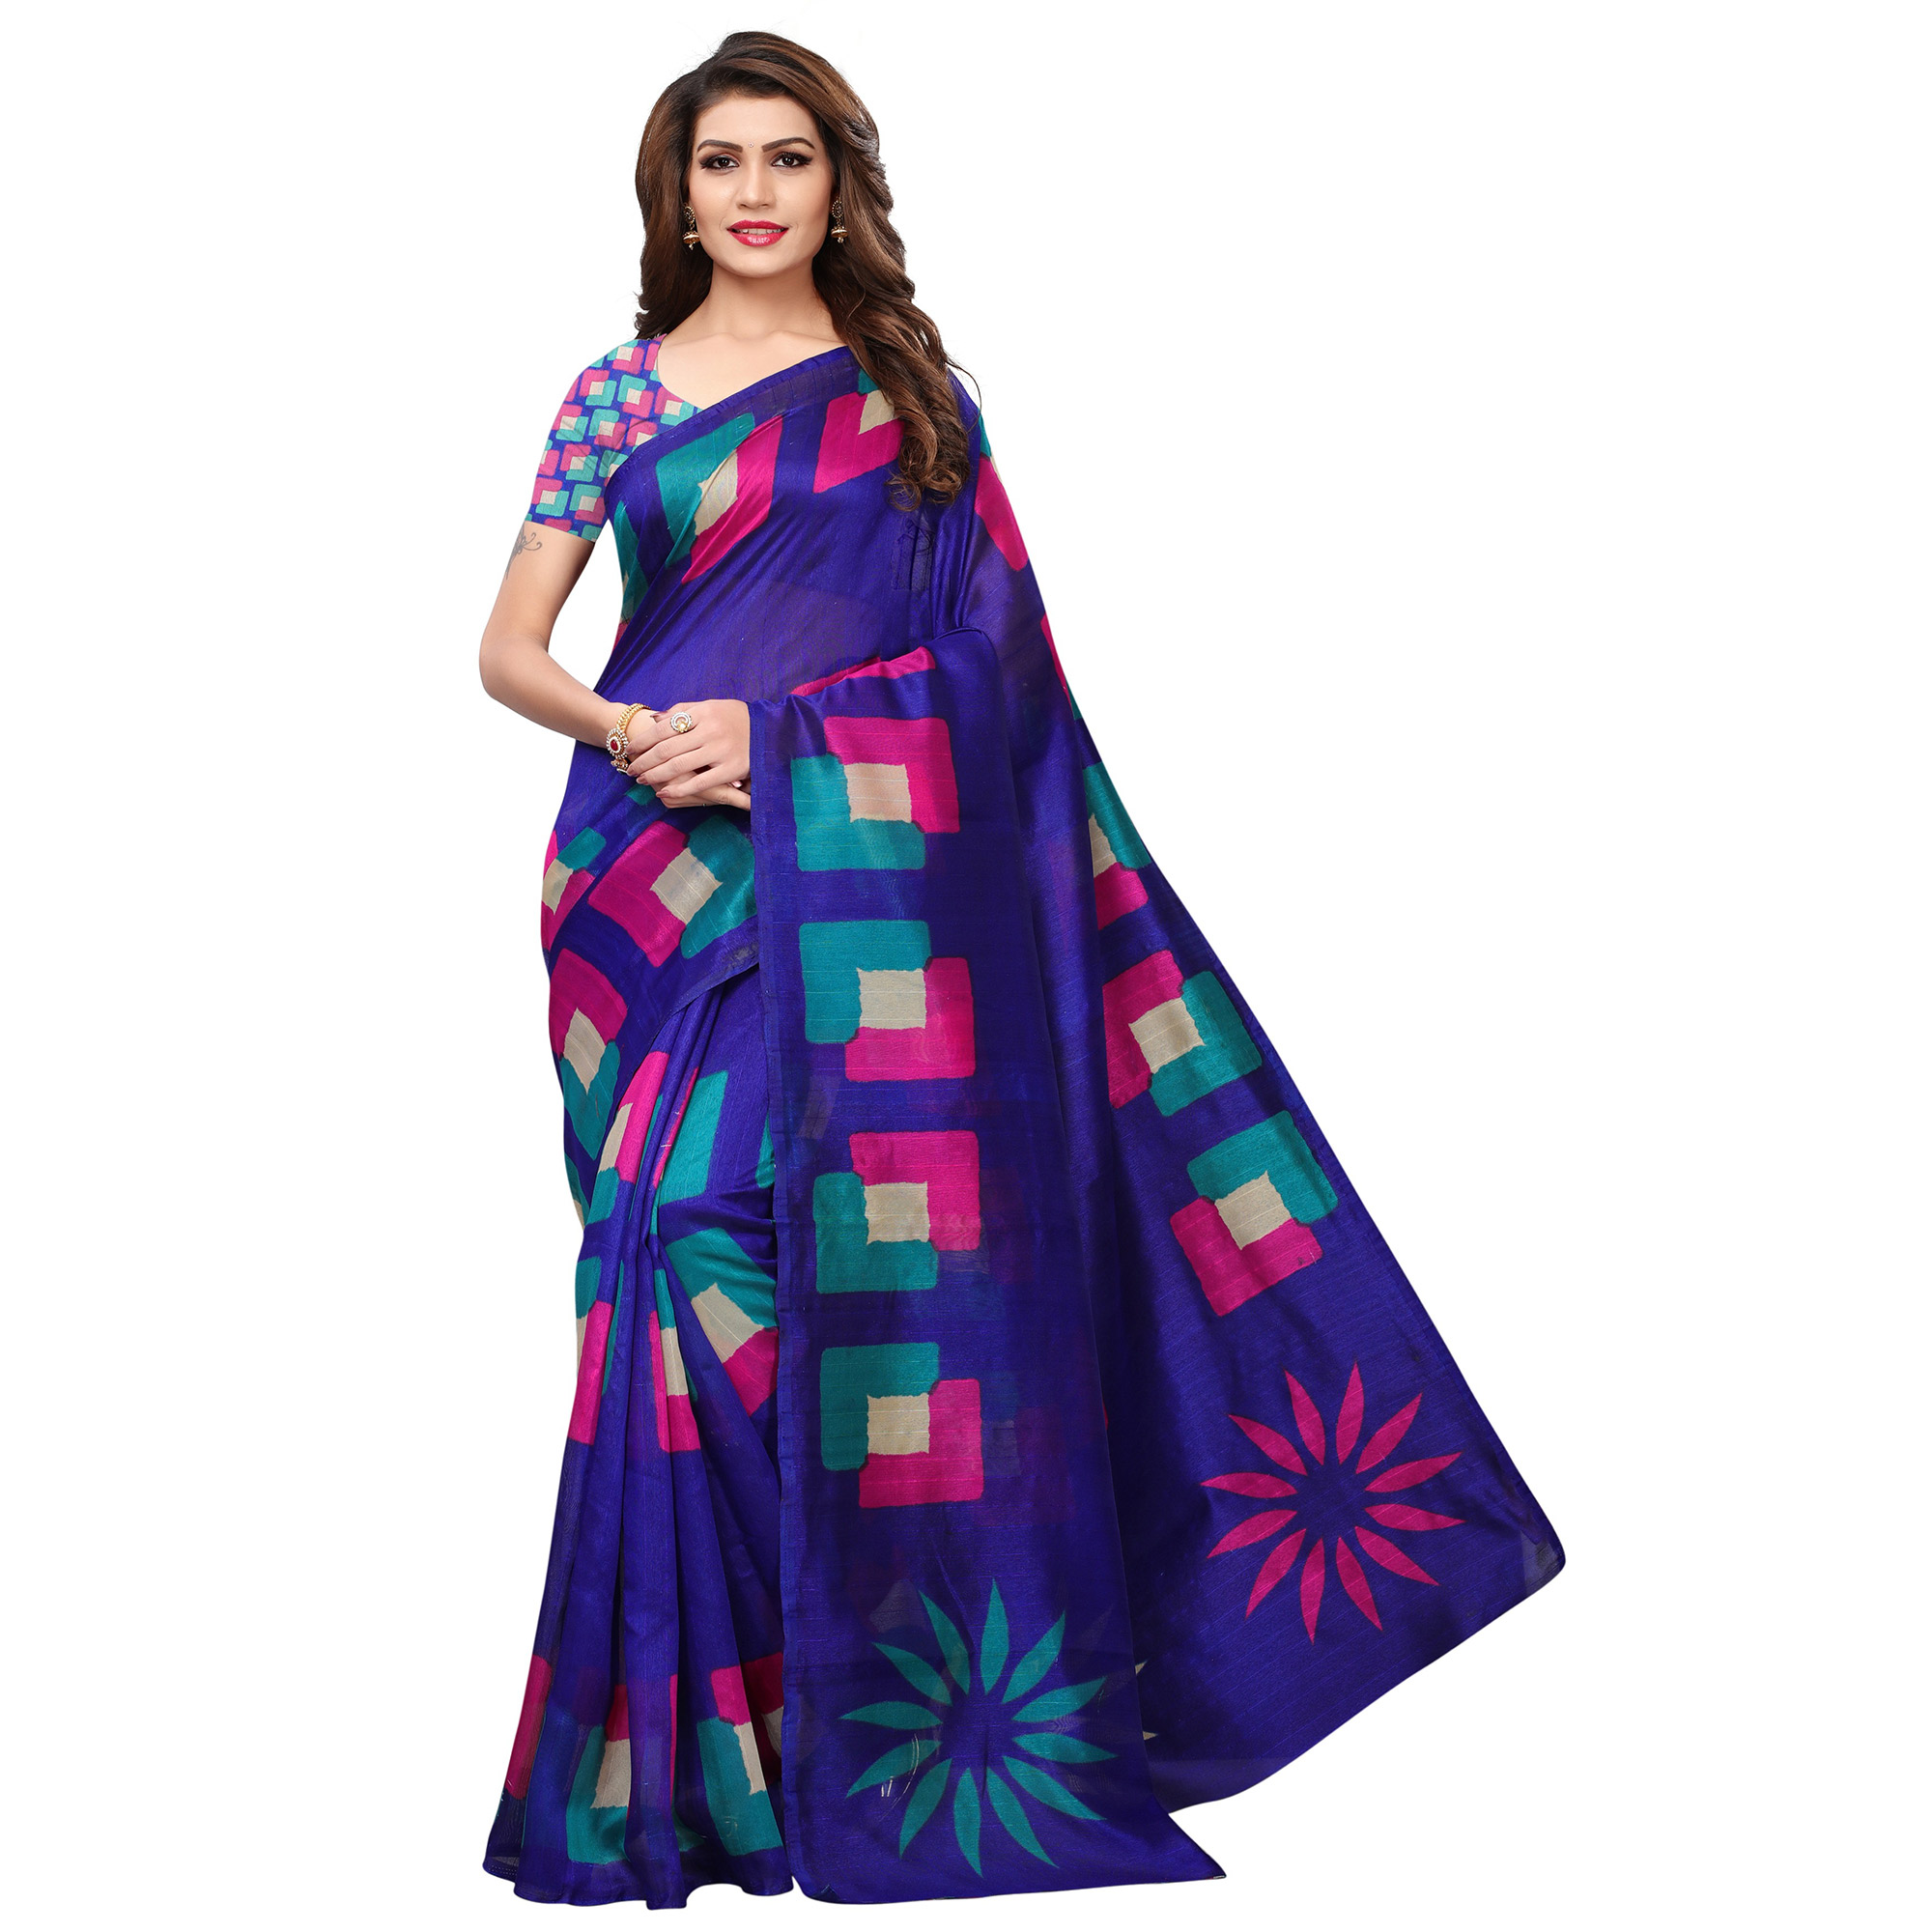 Appealing Casual Printed Saree - Pack of 3